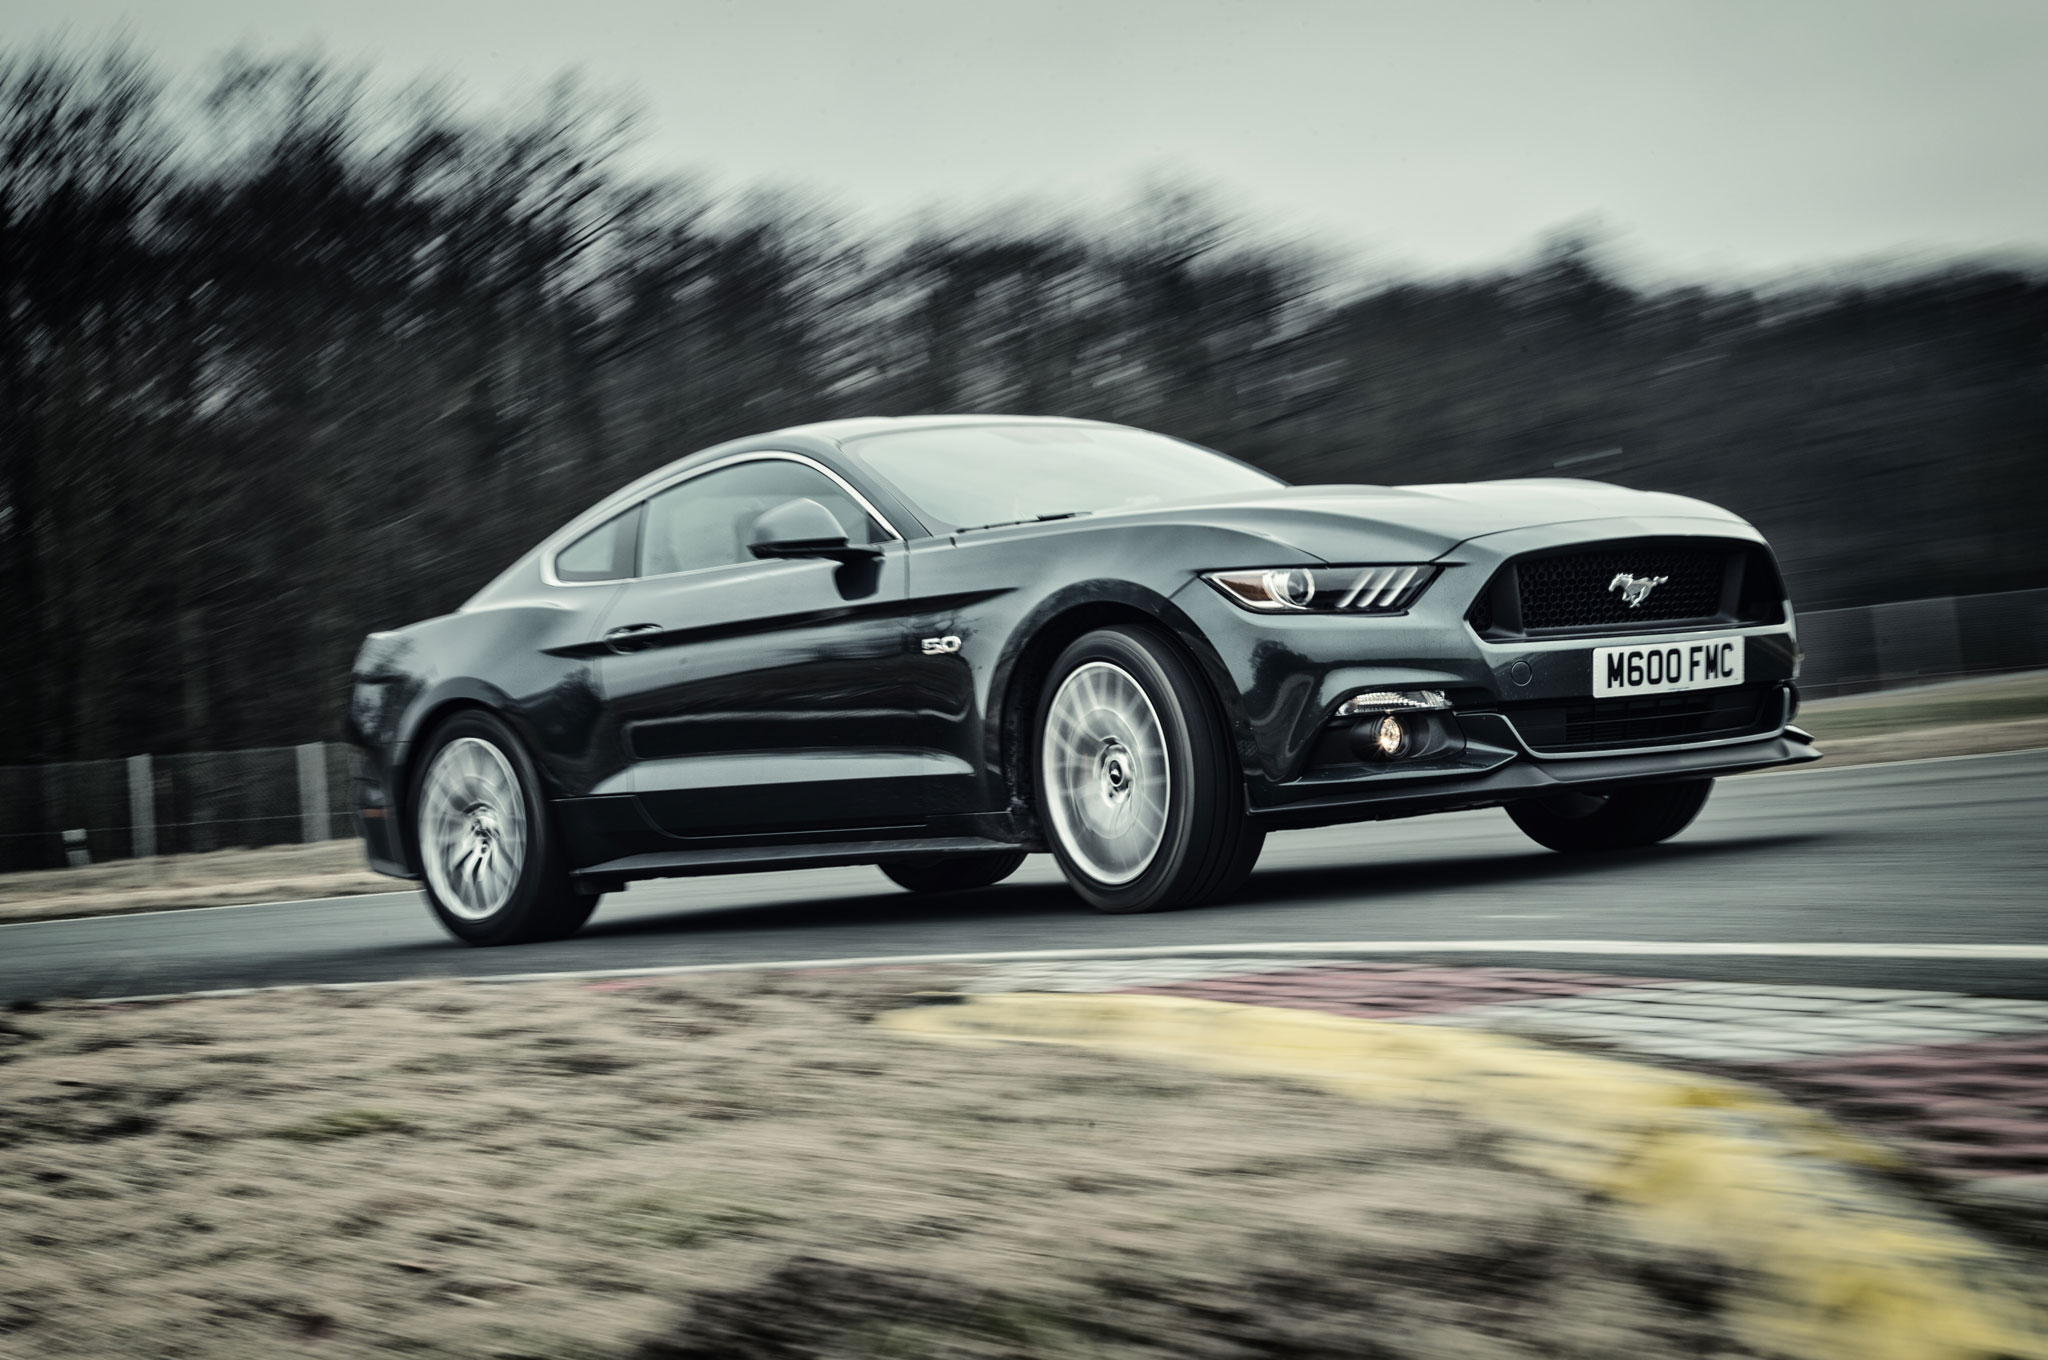 2015 Ford Mustang GT Front Three Quarter In Motion 01